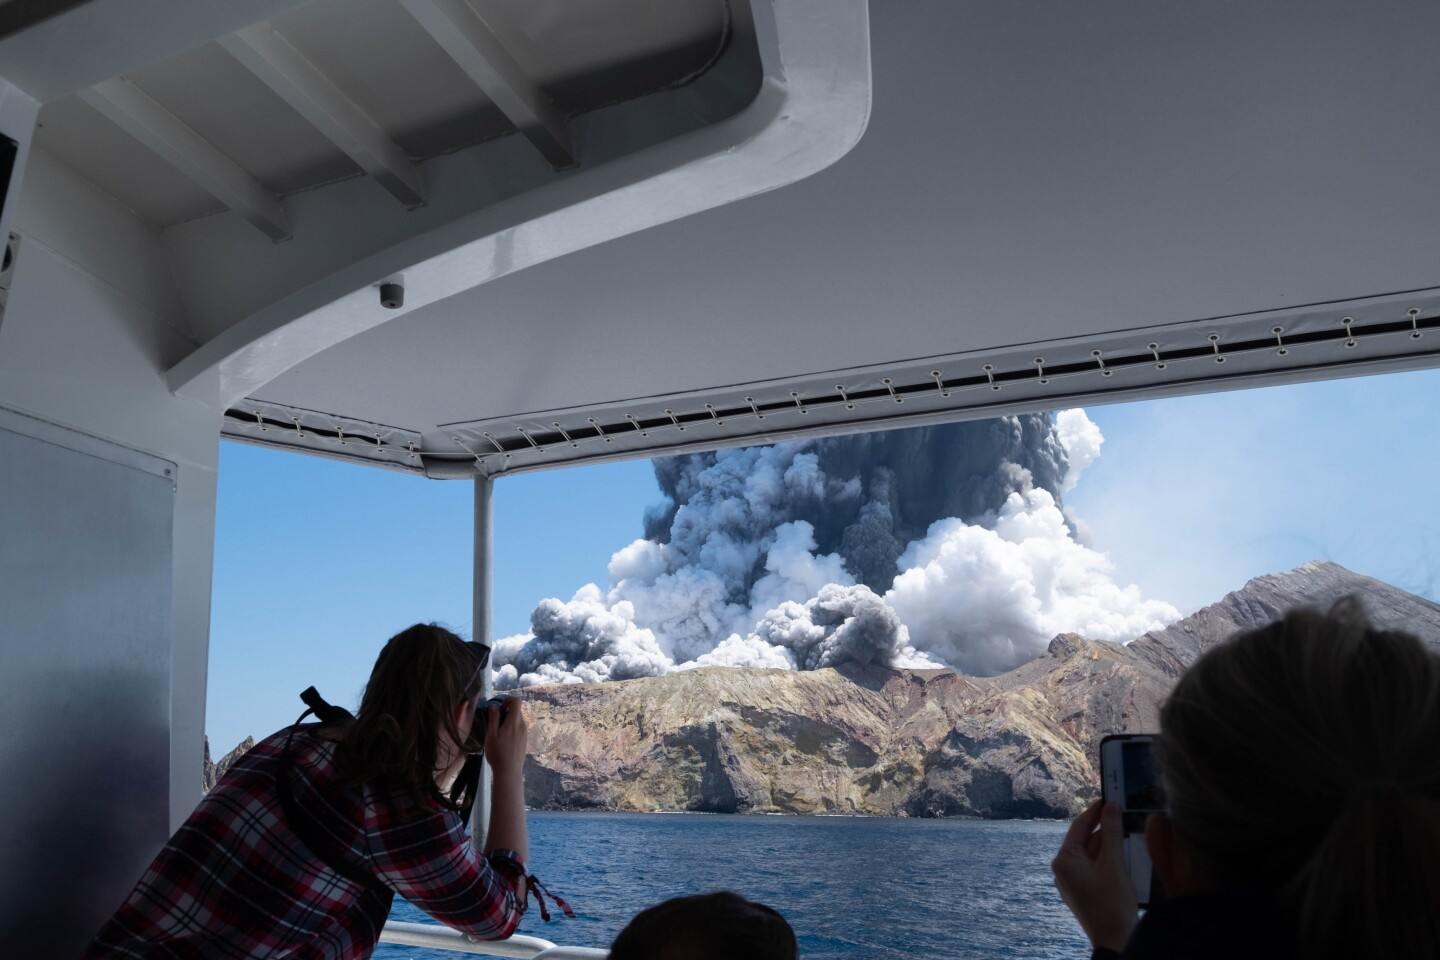 Editorial use only. MANDATORY CREDIT: MICHAEL SCHADE /NO SALES Mandatory Credit: Photo by MICHAEL SCHADE/EPA-EFE/REX (10495187b) An image provided by visitor Michael Schade shows White Island (Whakaari) volcano, as it erupts, in the Bay of Plenty, New Zealand, 09 December 2019. According to police, at least five people have died in the volcanic erruption at around 2:11 pm local time on 09 December. The island is located around 40km offshore of the Bay of Plenty. New Zealand's White Island volcano erupts - 09 Dec 2019 ** Usable by LA, CT and MoD ONLY **